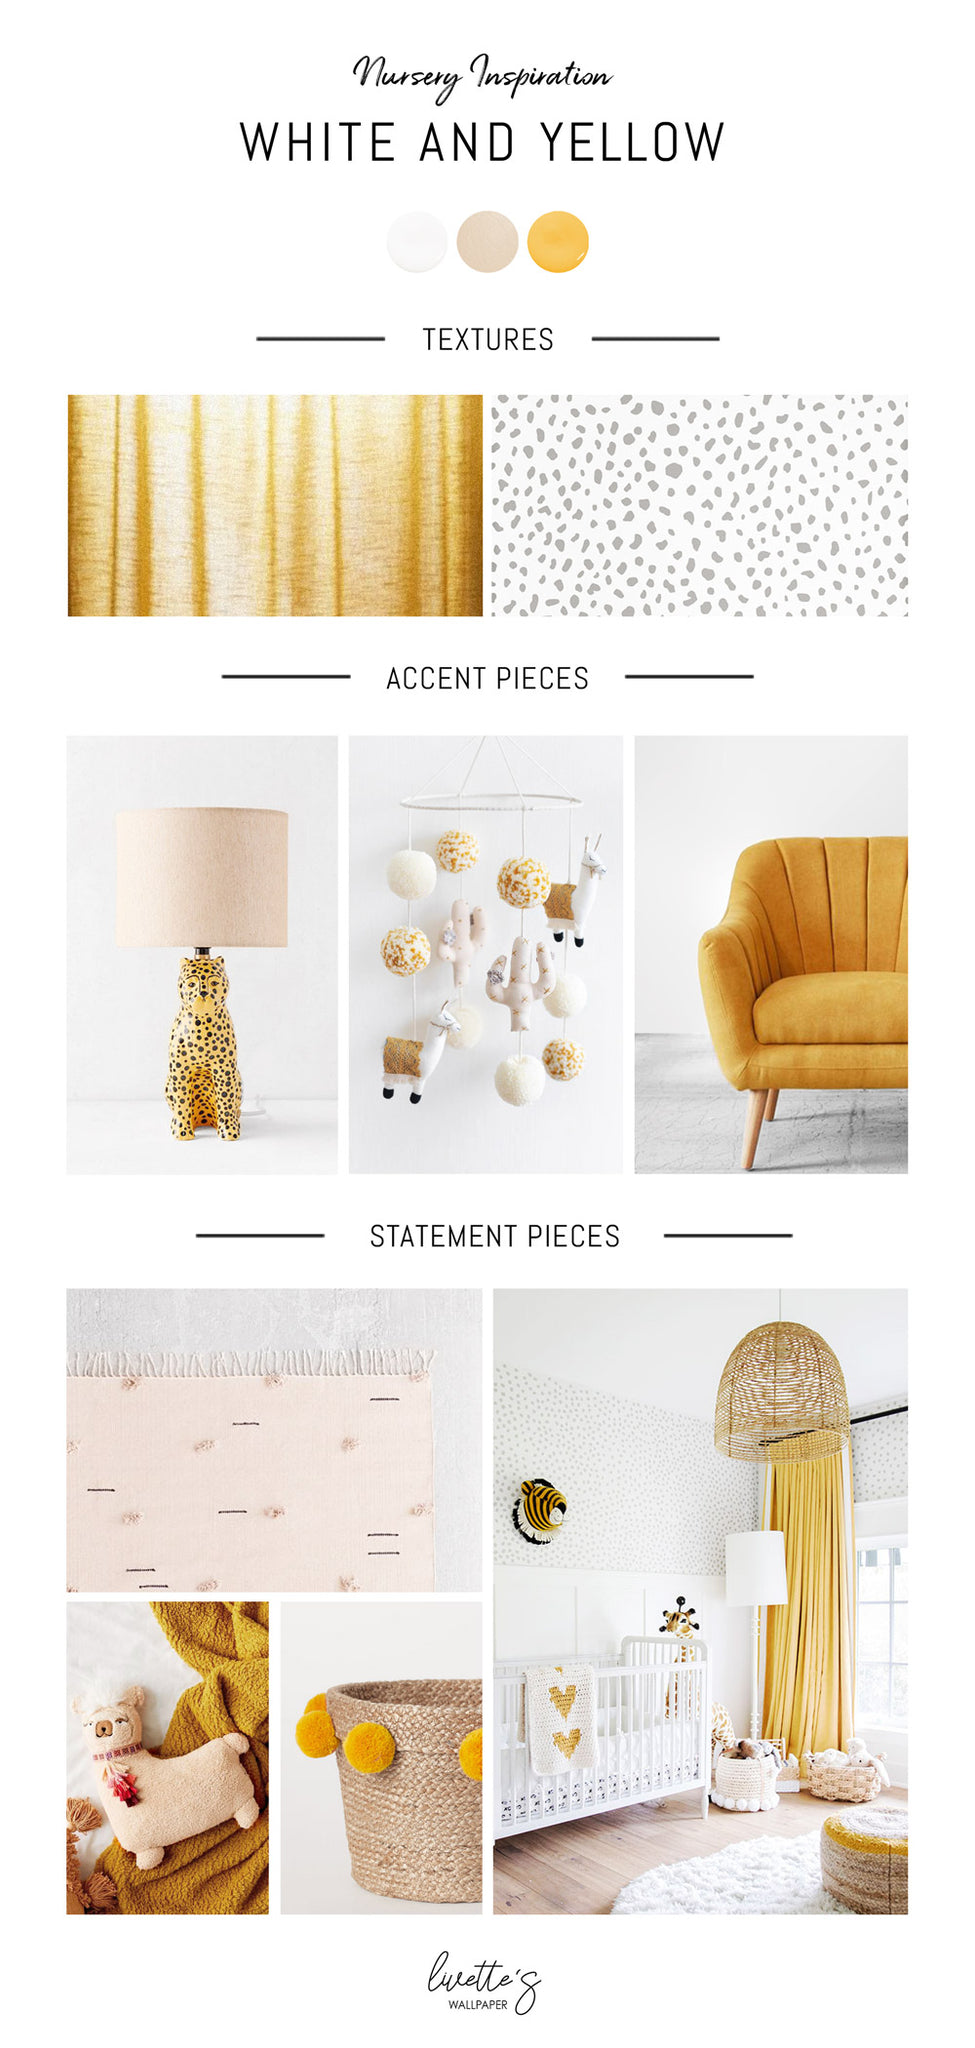 White and yellow nursery interior inspiration - Livettes